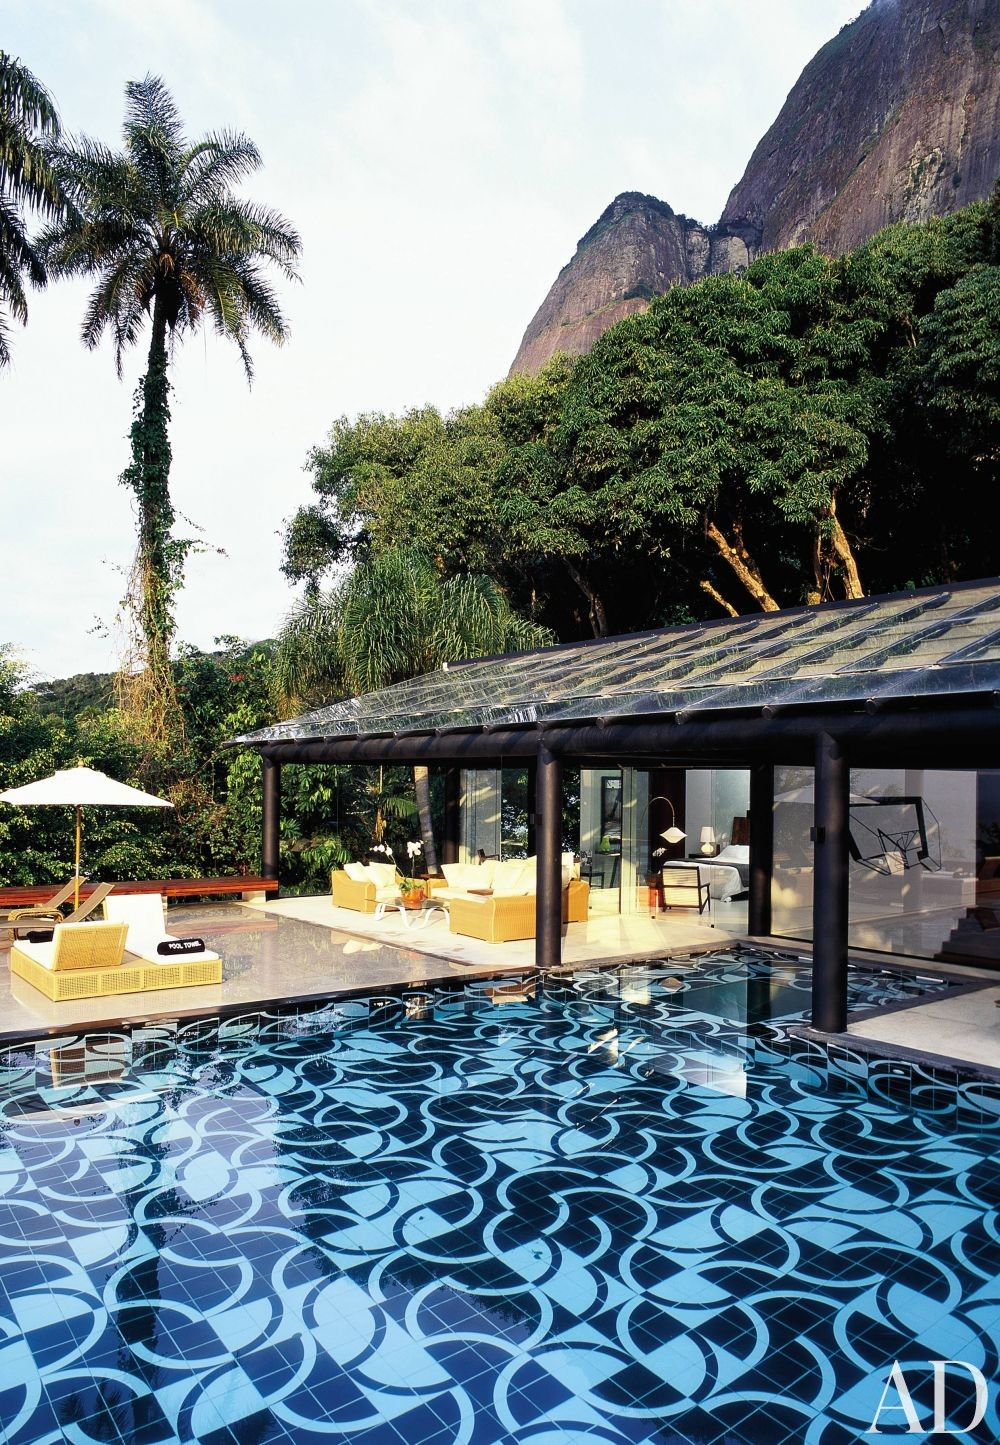 Exotic Pool by Mlinaric, Henry & Zervudachi and Luciano Pedrosa in Rio de Janeiro, Brazil